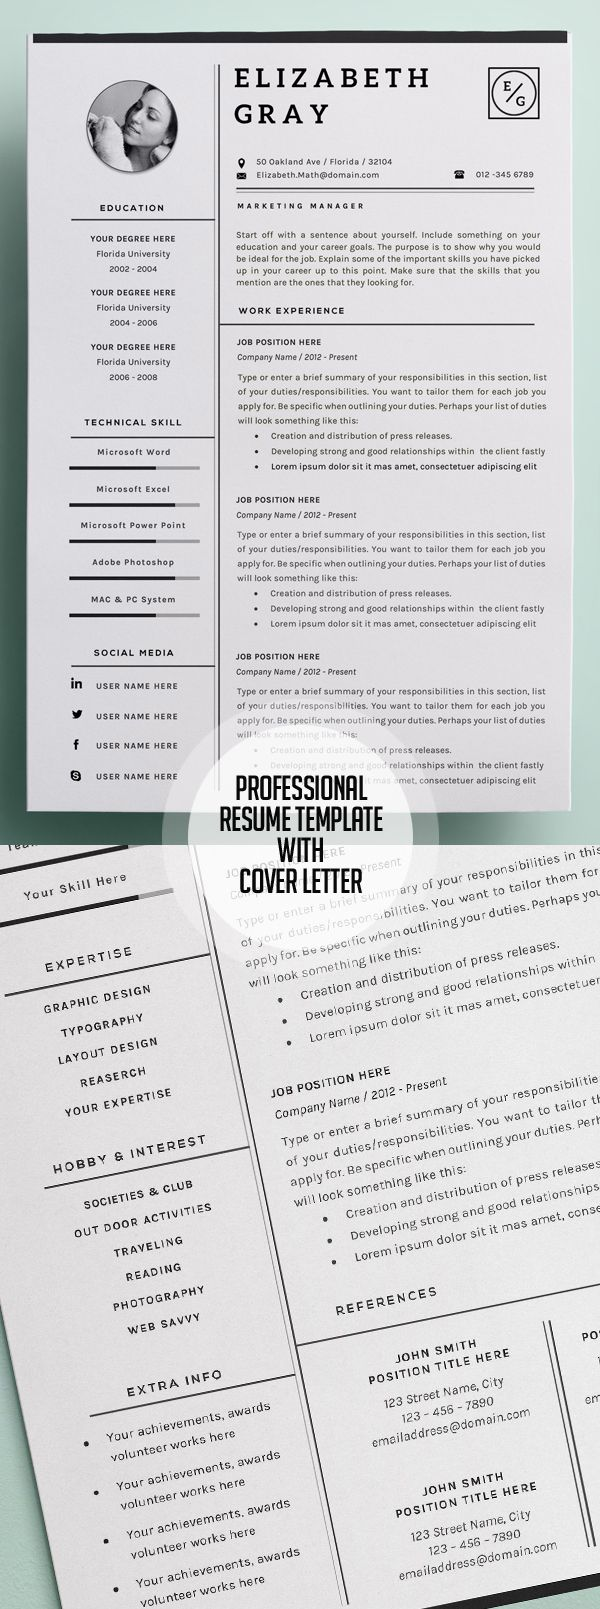 25 unique resume templates ideas on pinterest resume ideas